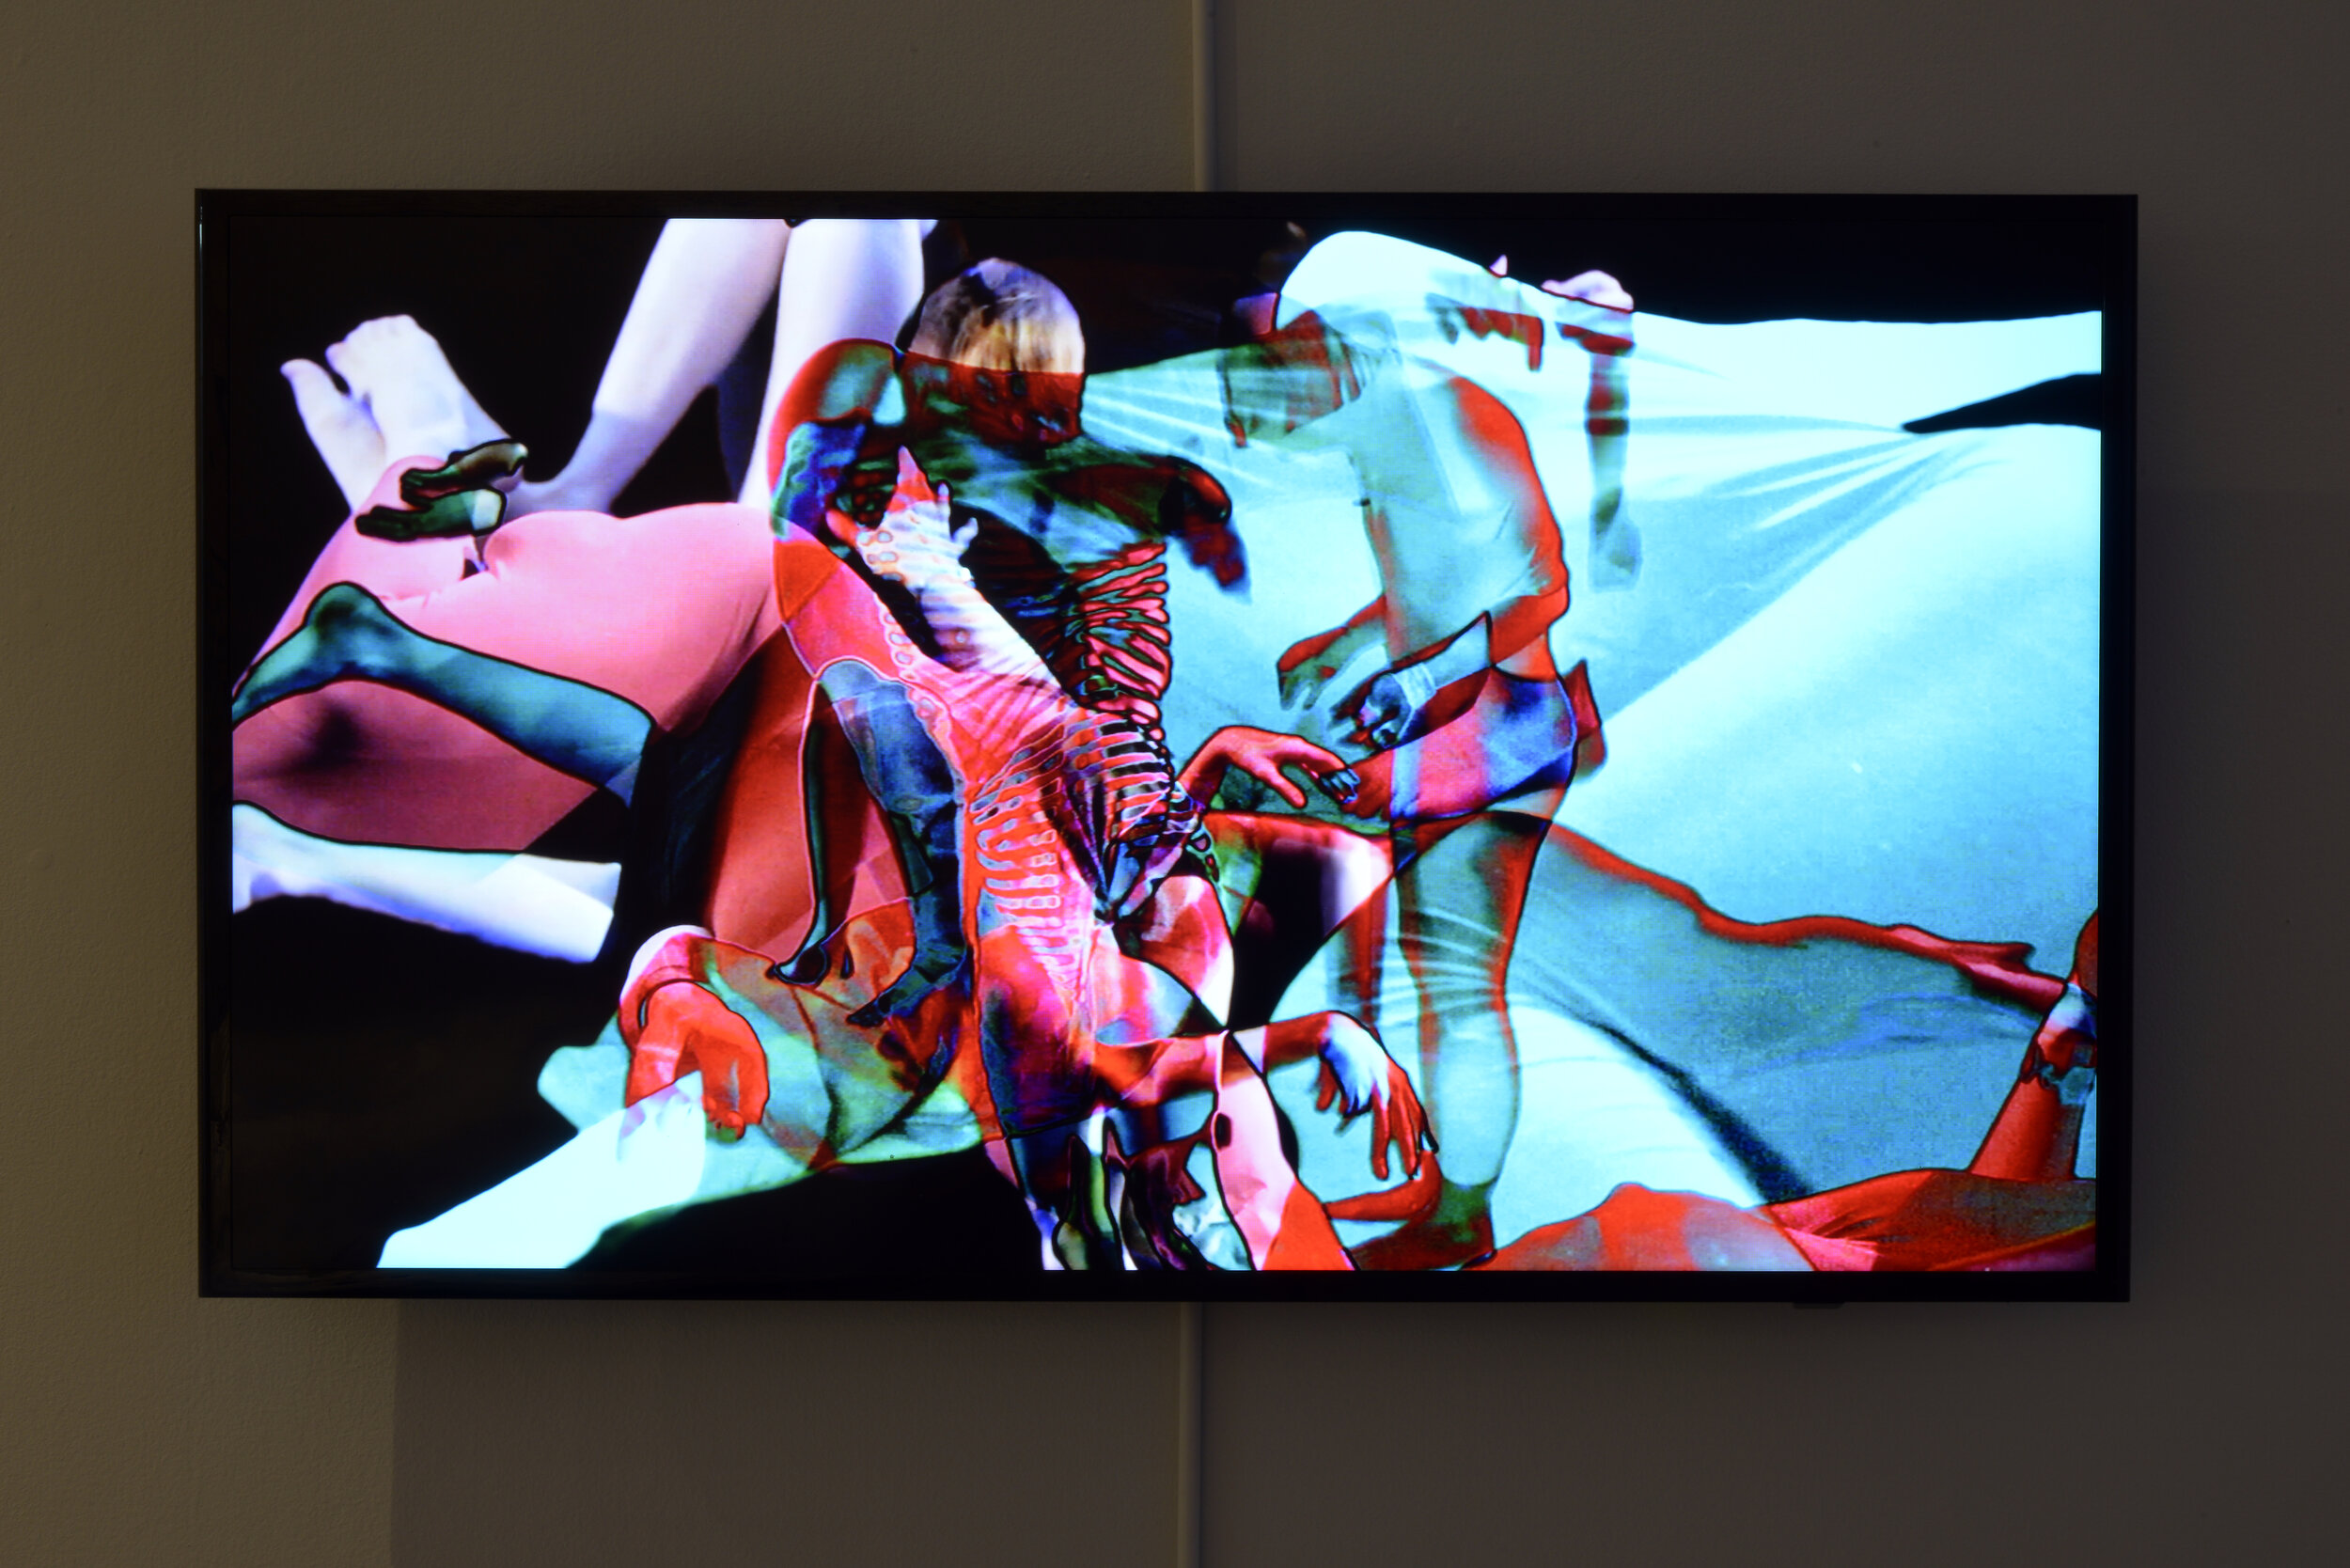 Lasha Mowchun,   Second Skin 9video still),   2014, video, 4:25, Collection of the Artist. Photo by Don Hall.